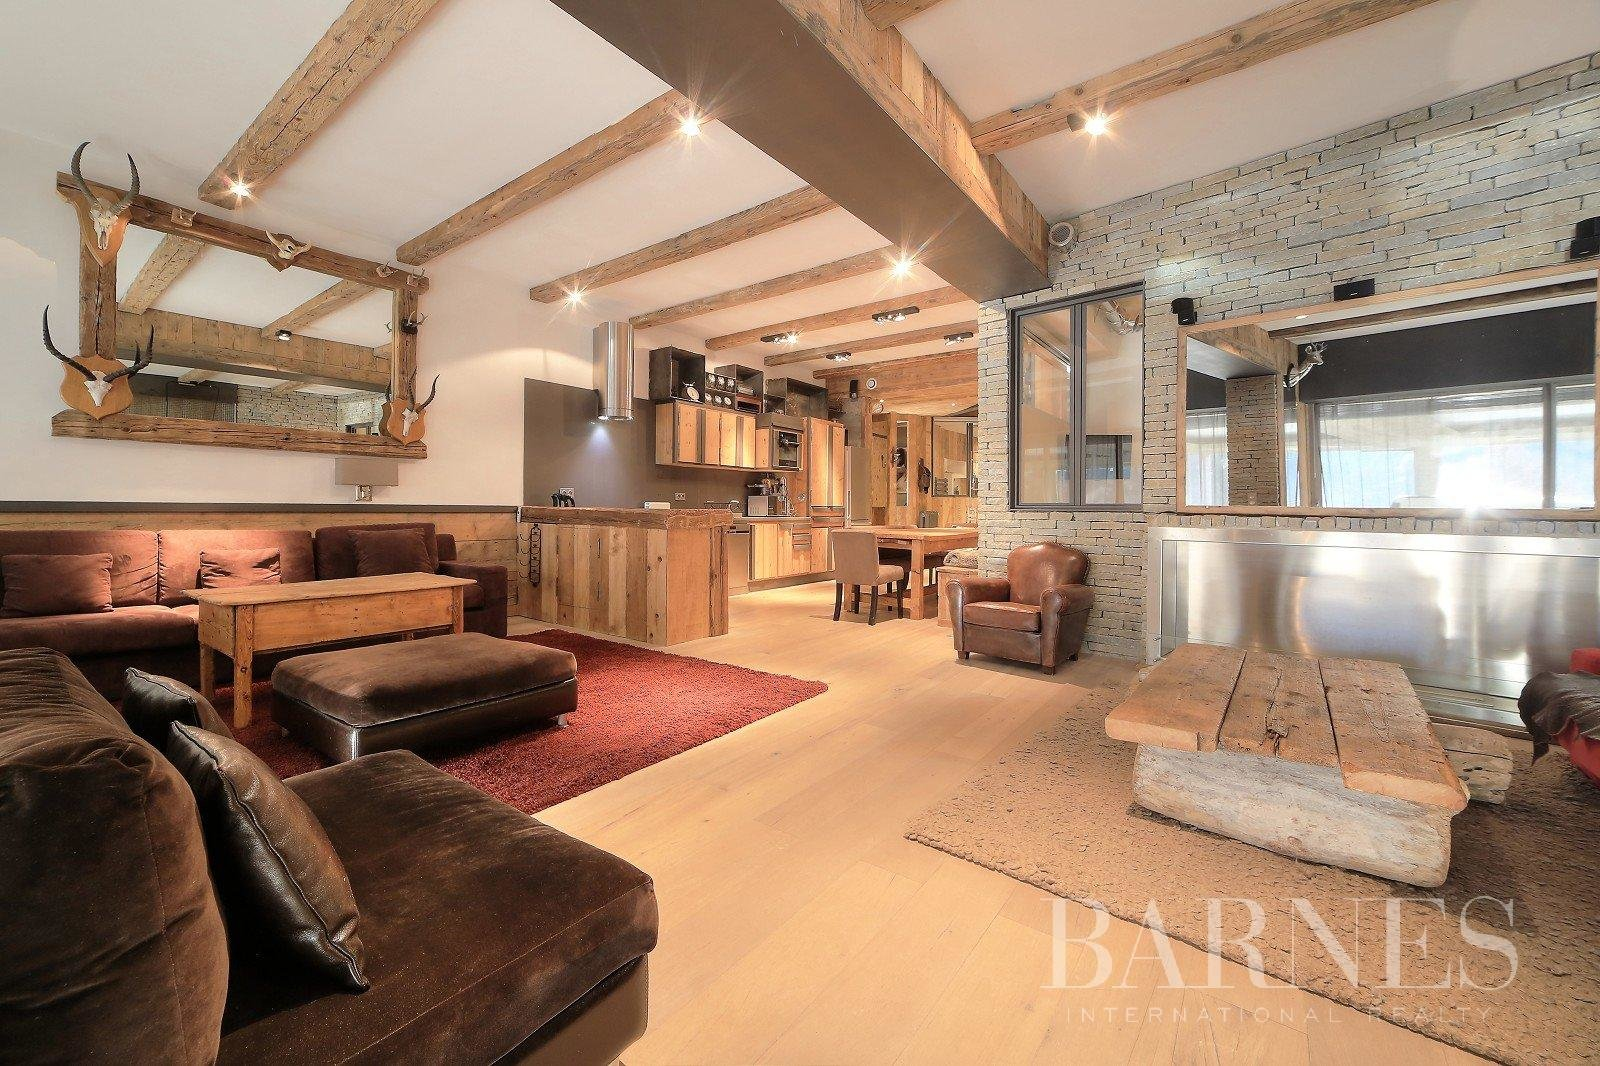 3 bedrooms Loft-style apartment, near the Jaillet's ski slopes Chalet in Megeve